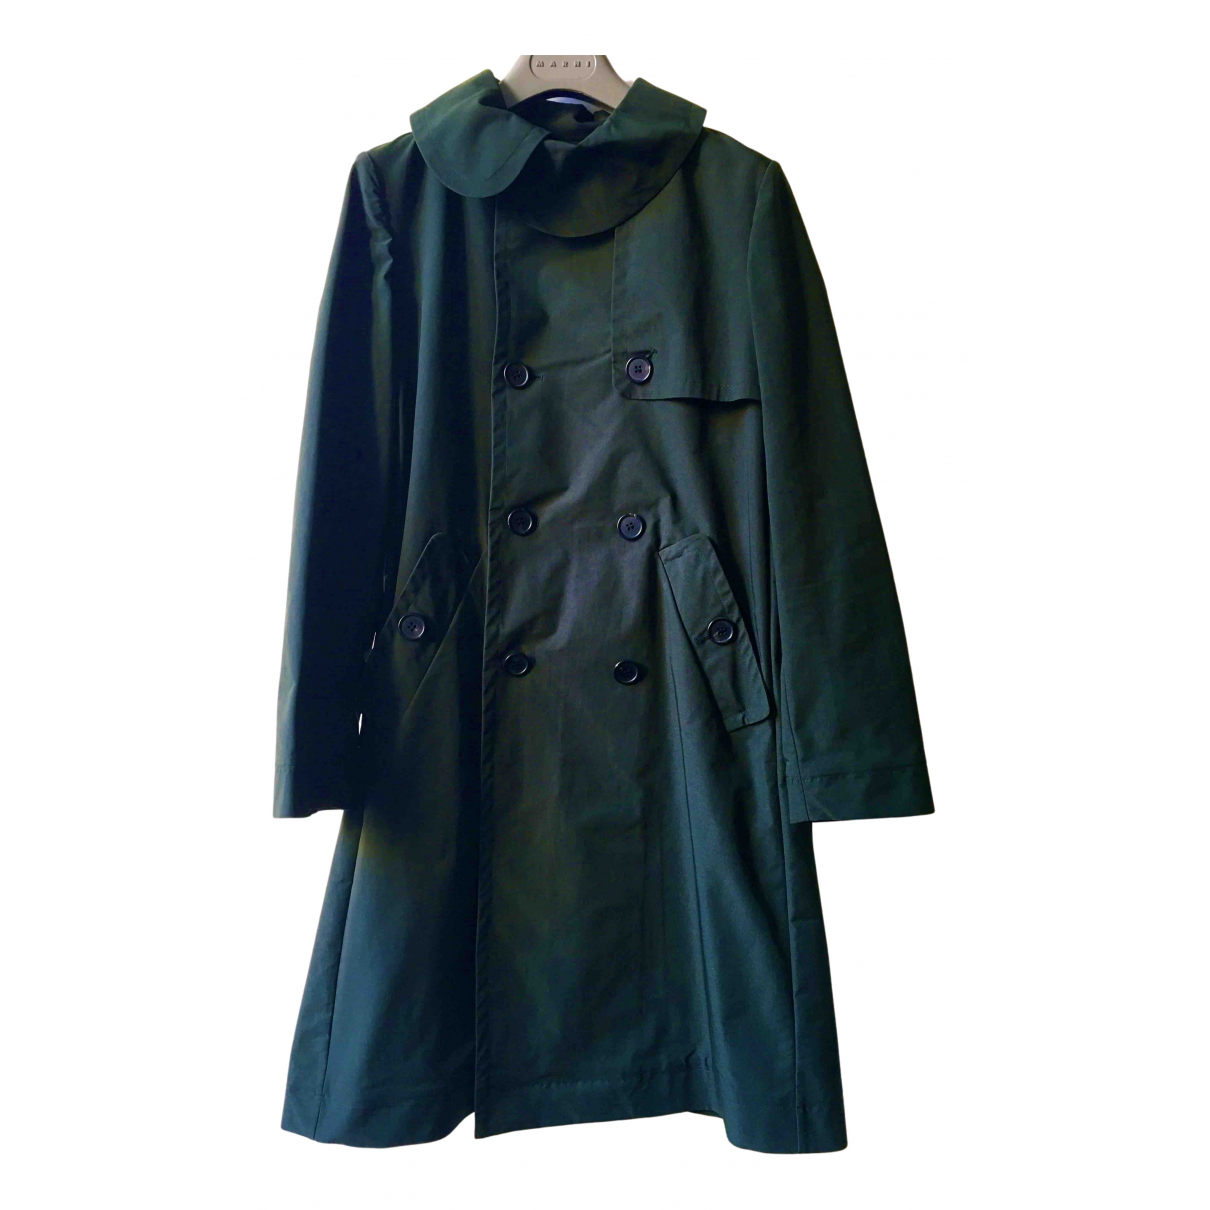 Marni N Green Trench coat for Women 38 IT